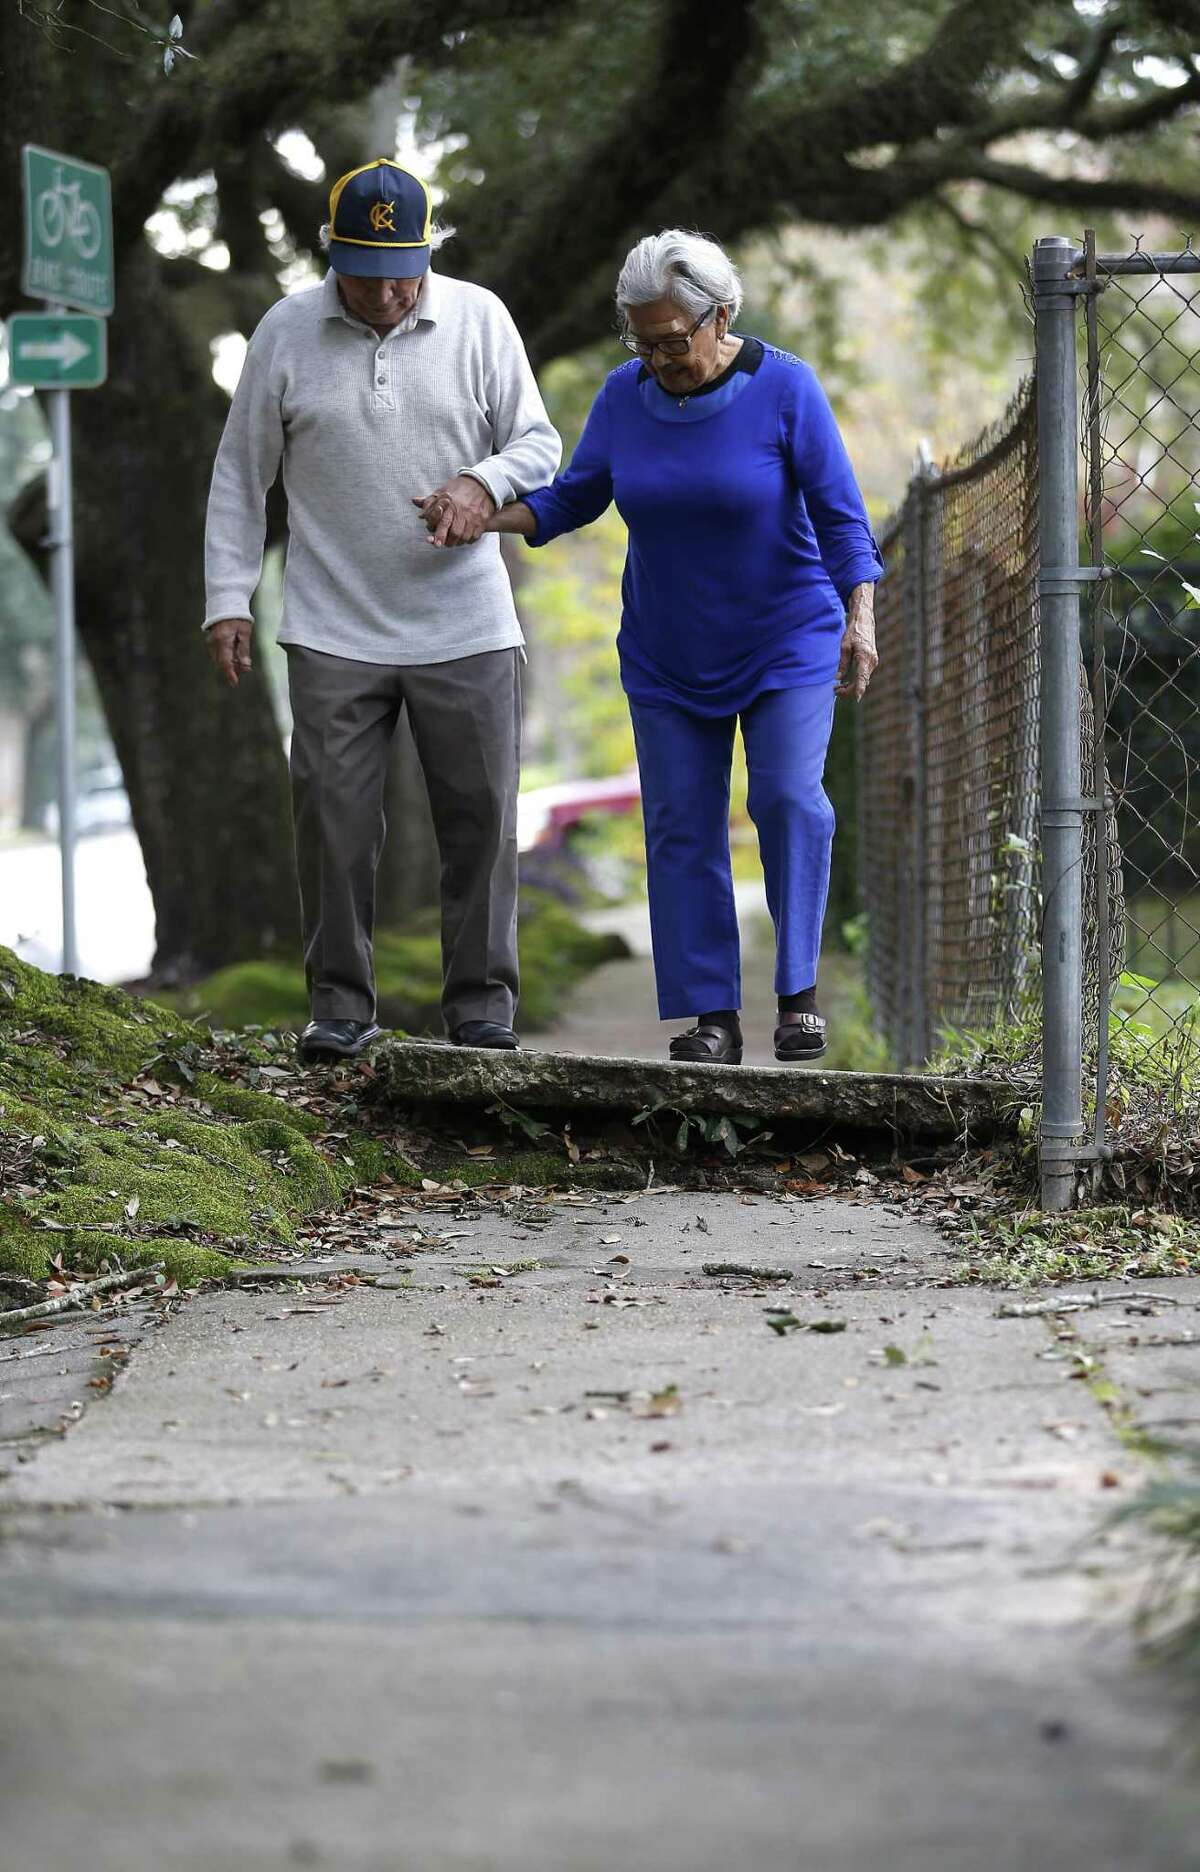 Sidewalks like this one in the Heights, where tree roots have forced a section out of joint, can a turn a simple walk around the block into an obstacle course.